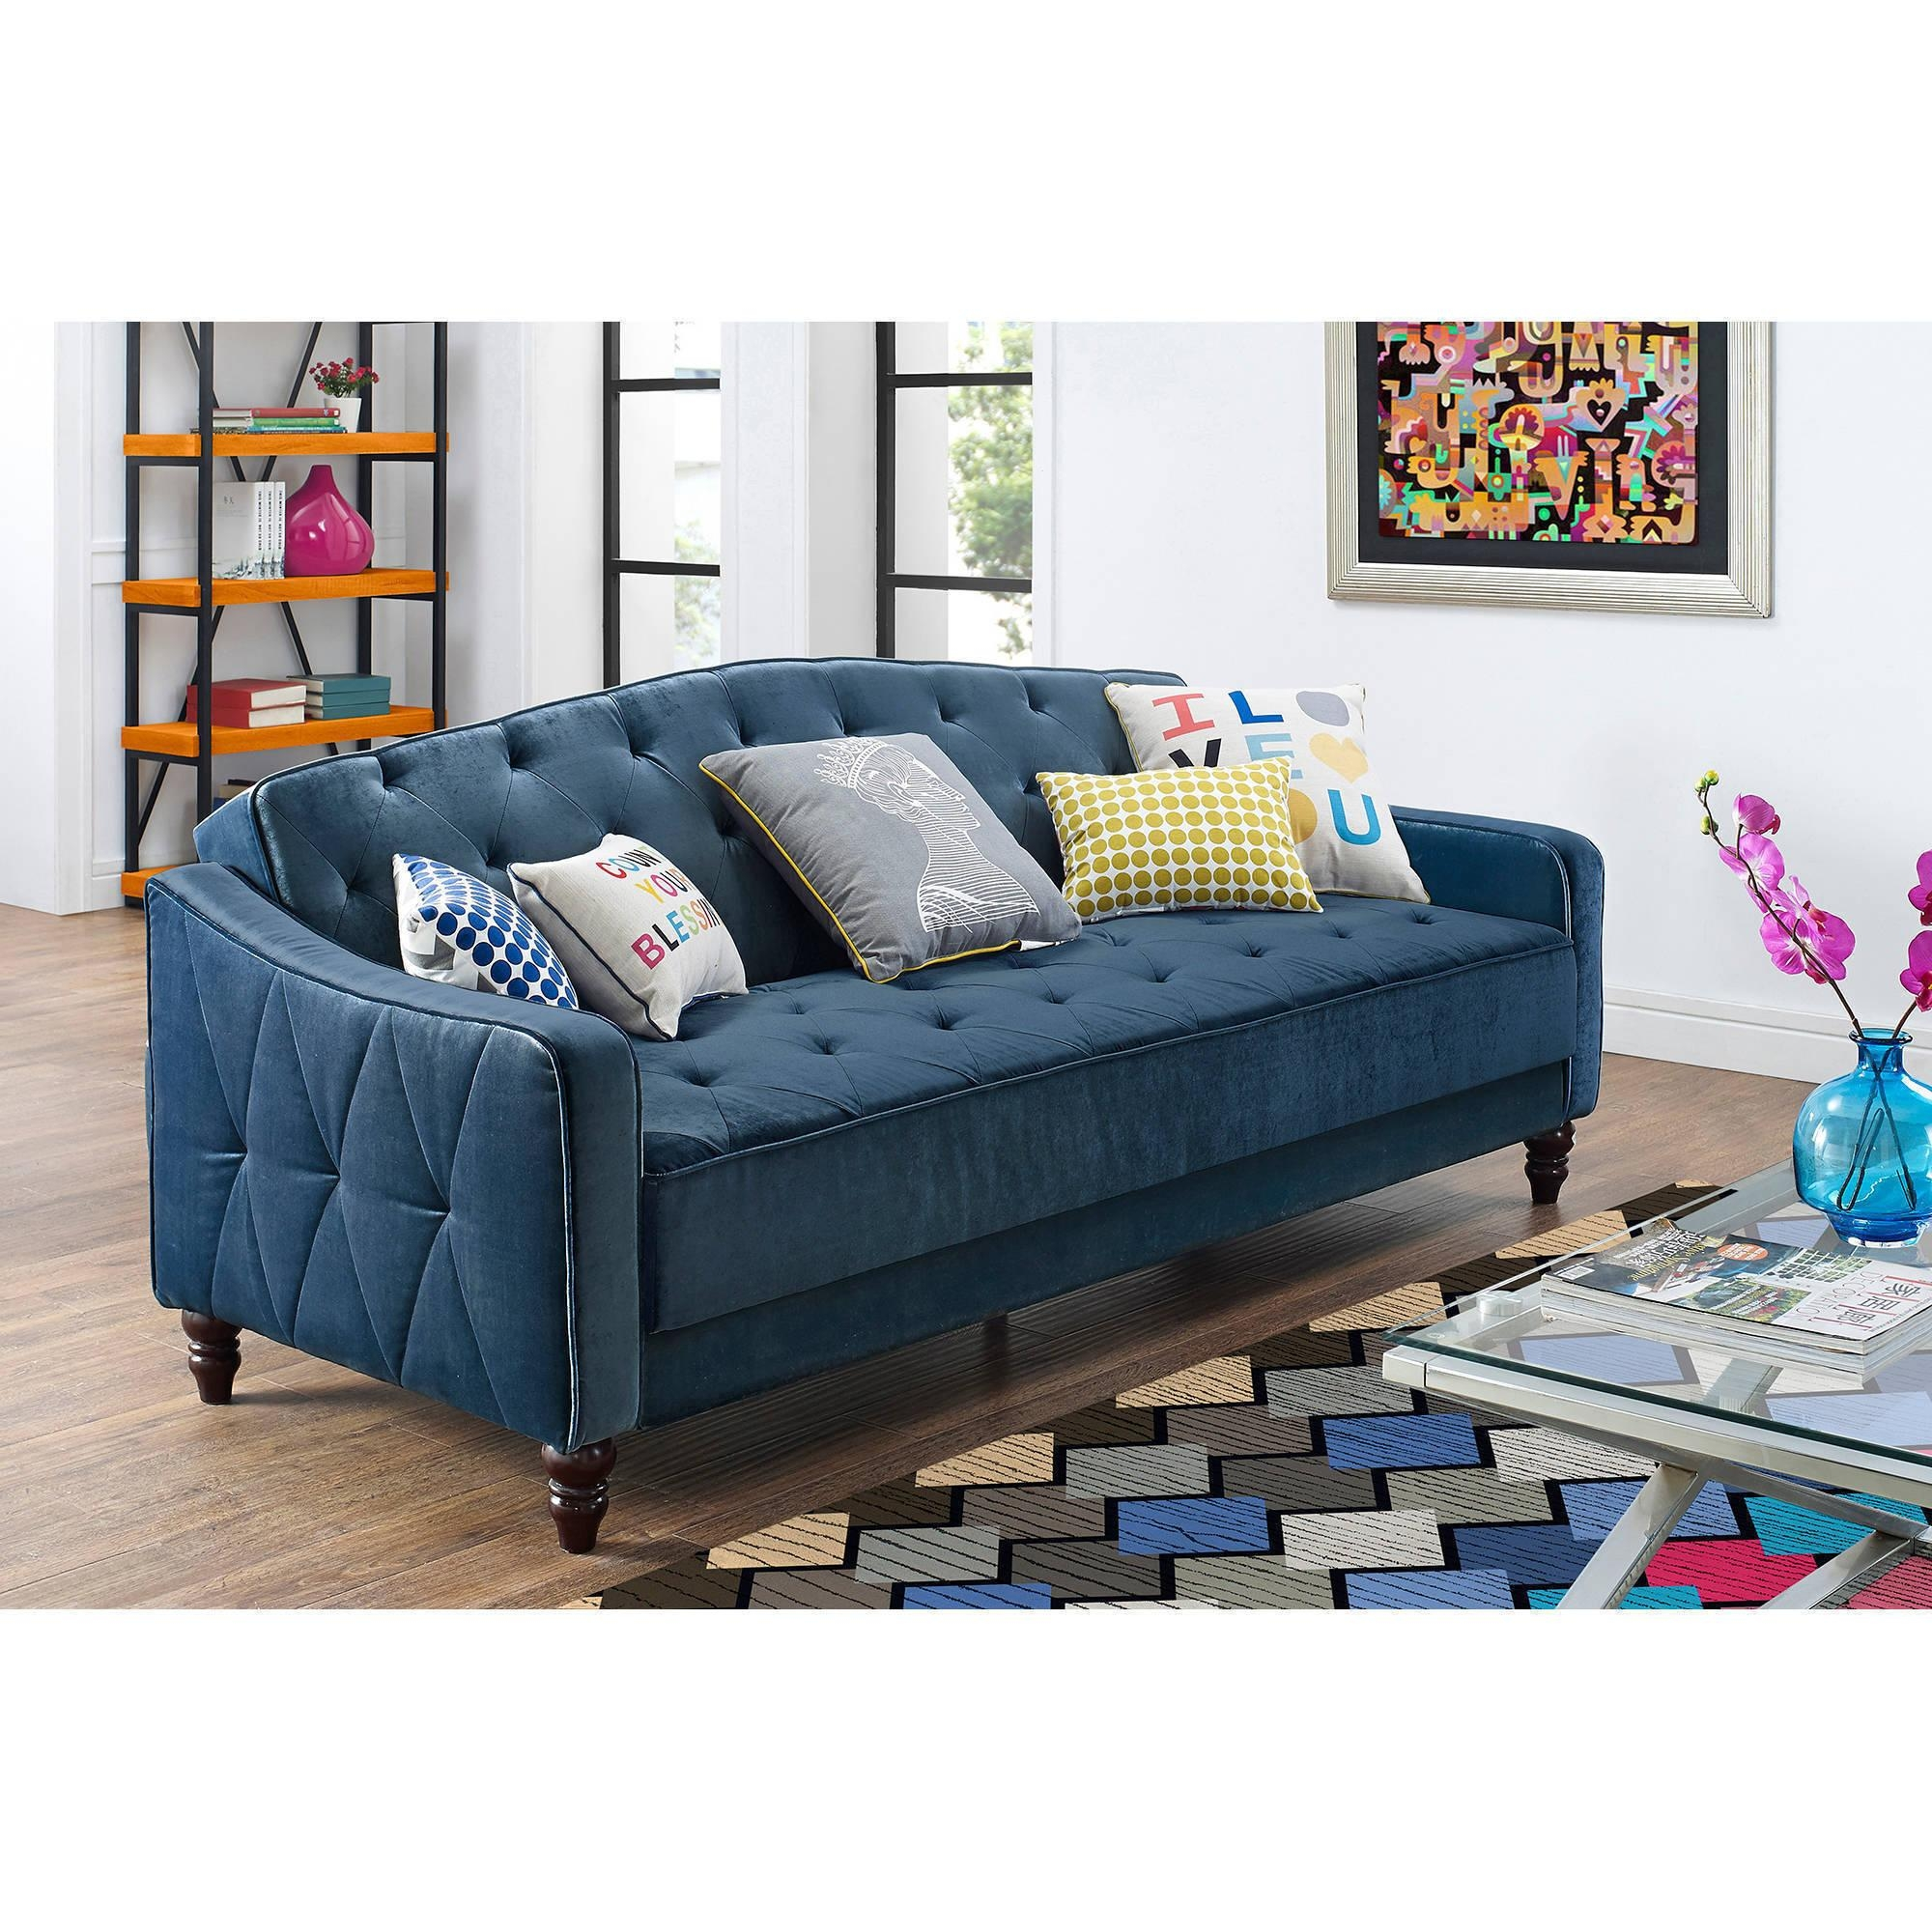 Sofa: Walmart Sofa Bed | Futon Value City | Couch Beds Inside City Sofa Beds (View 16 of 20)